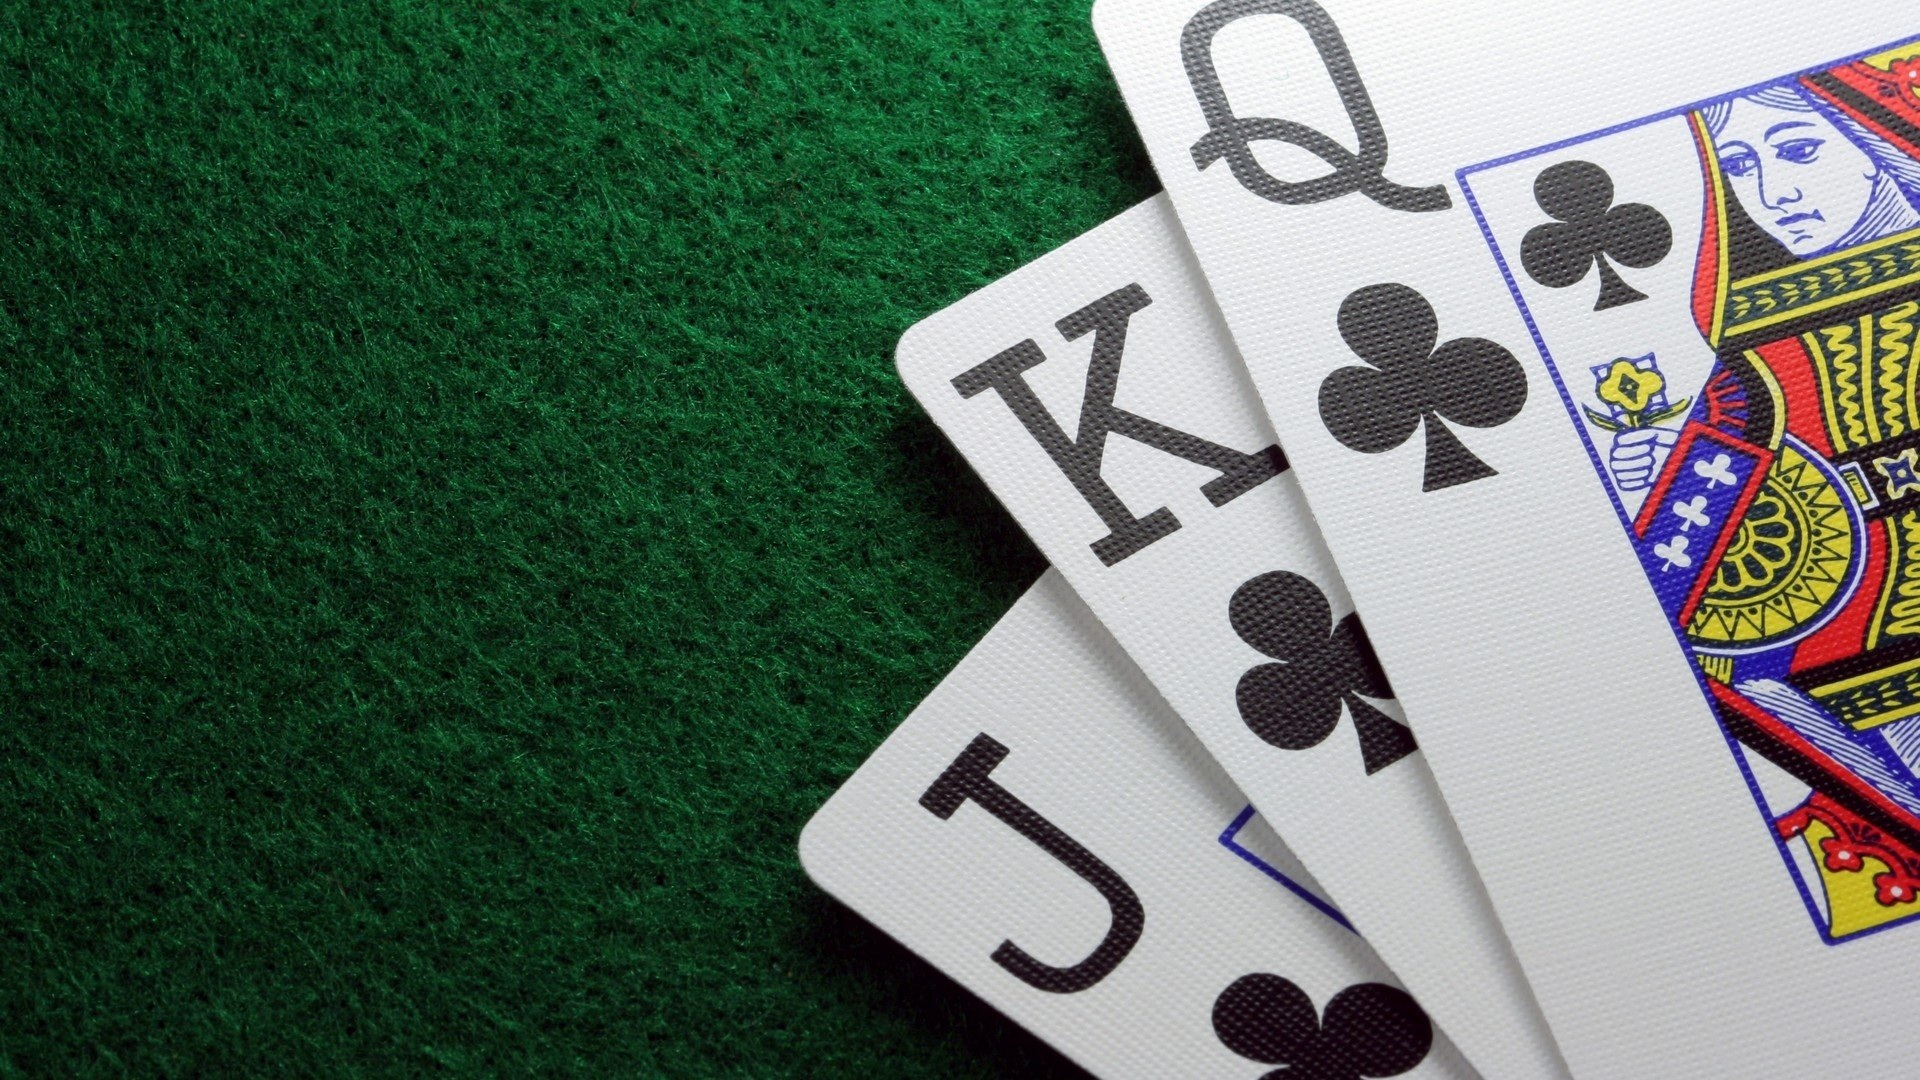 Playing Cards Wallpaper Hd